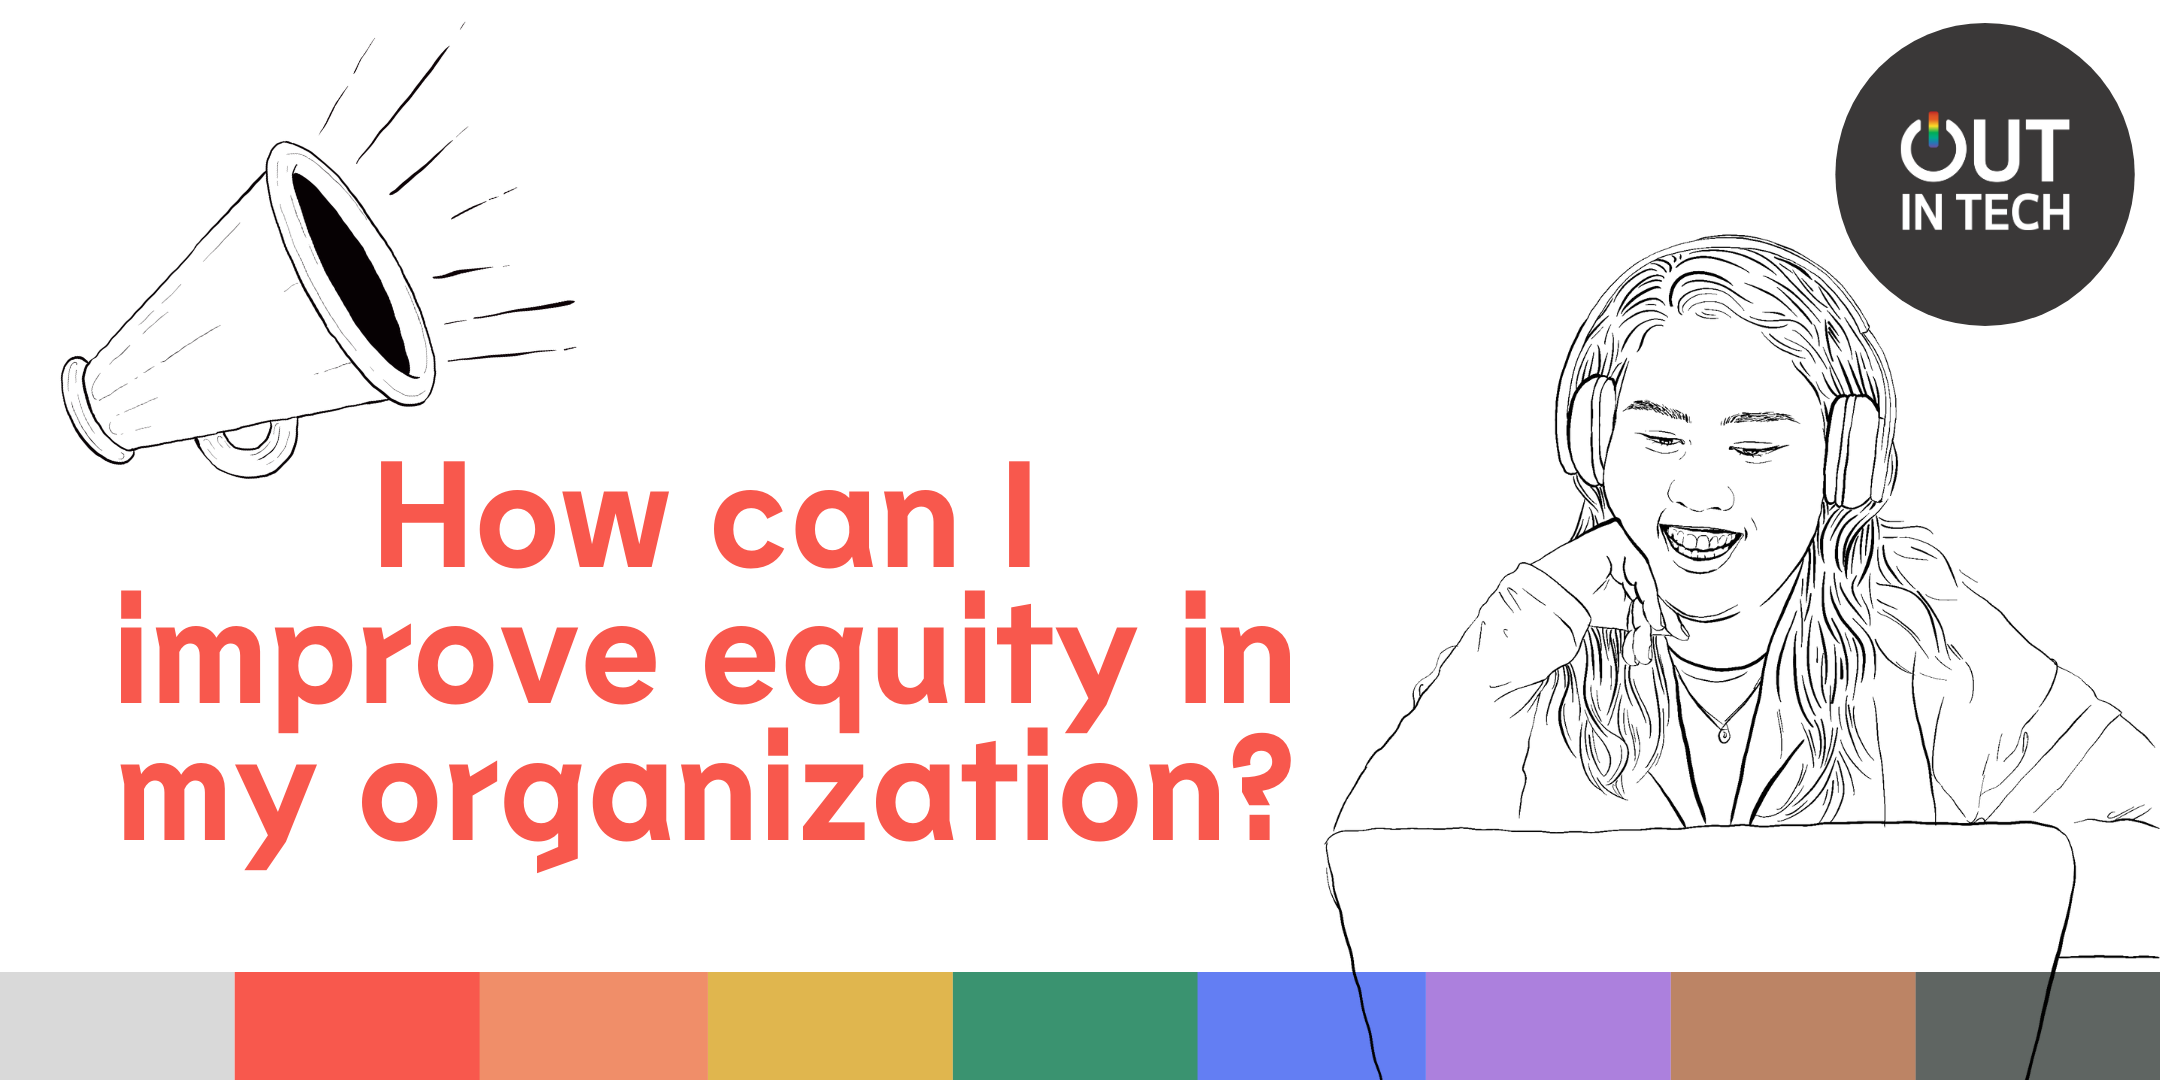 10 Strategies to Improve Equity in Your Organization